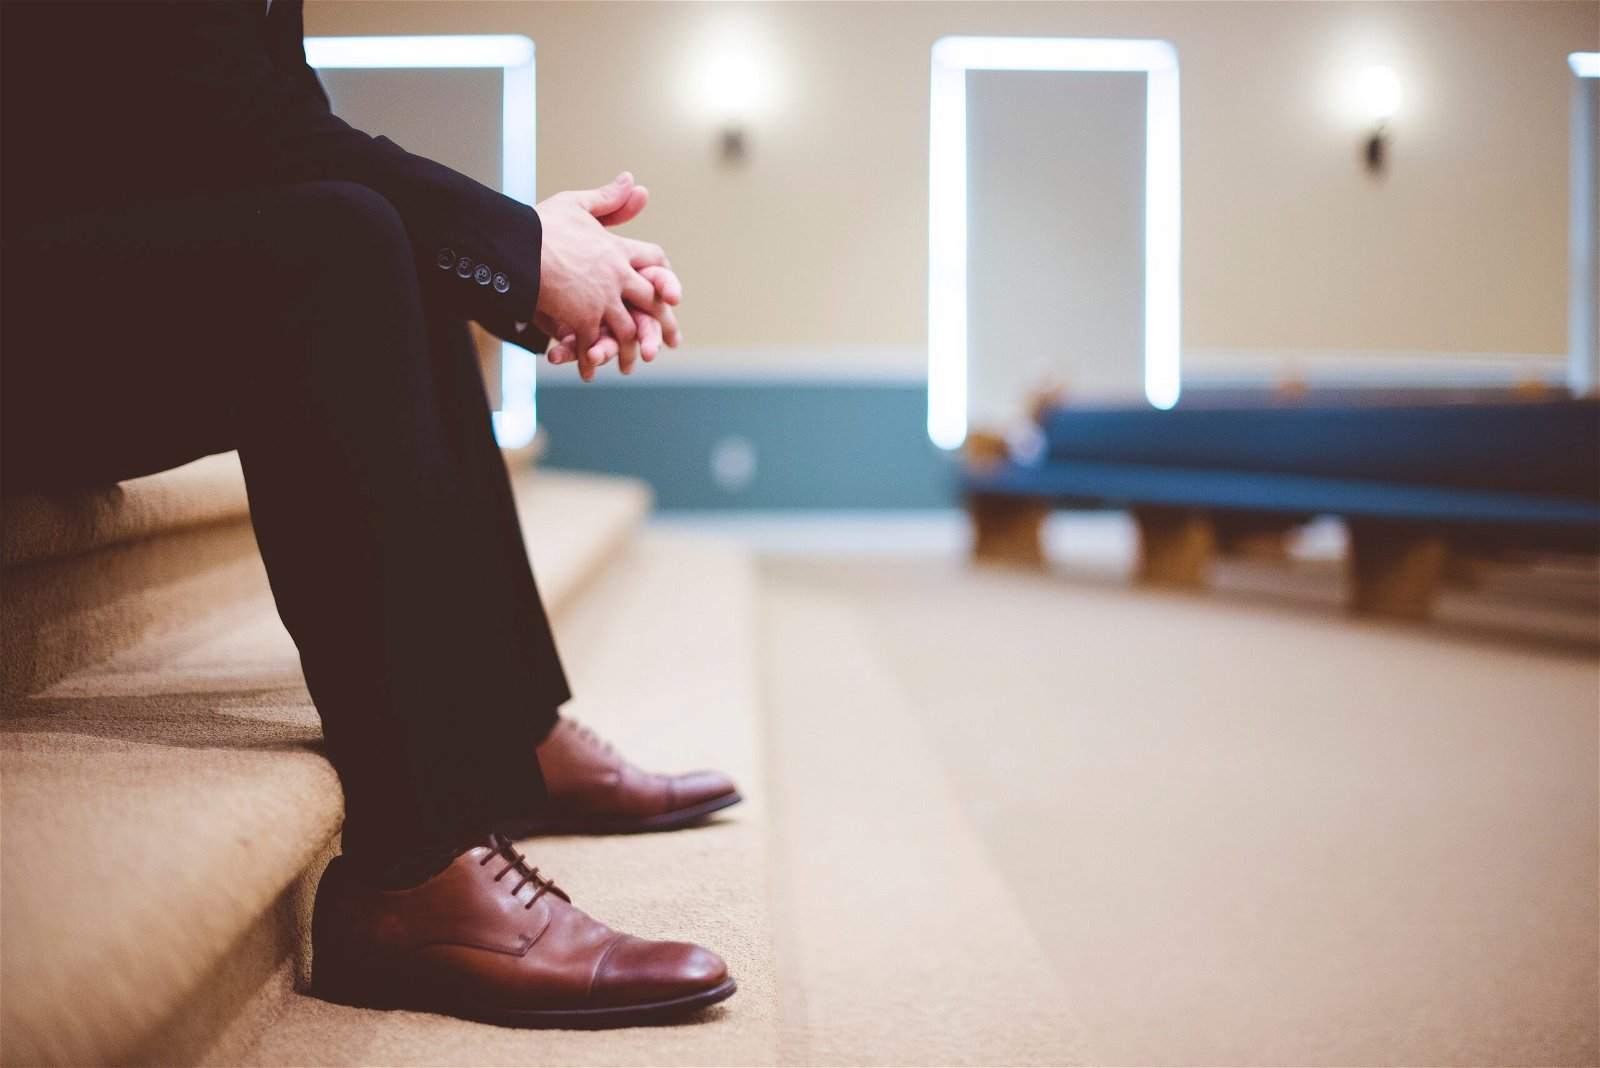 Biblical Counseling: What Is It and Why Is It Important? 9